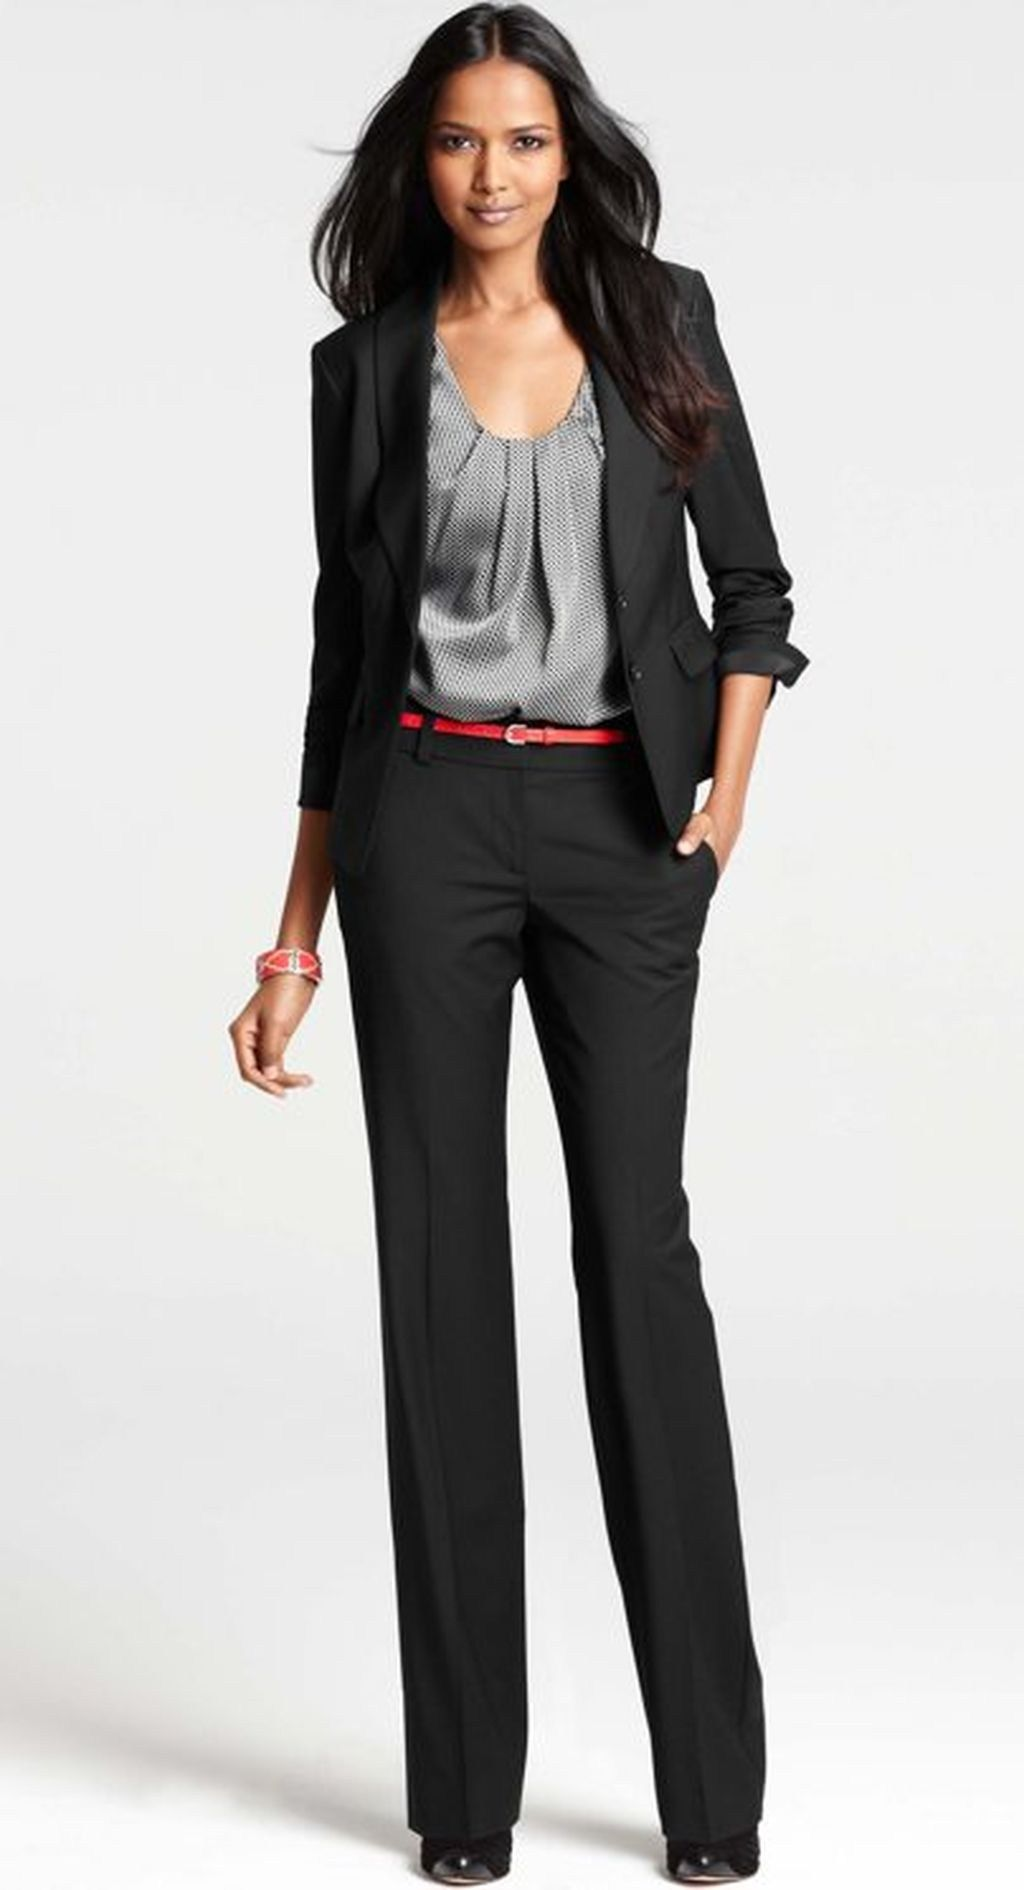 casual outfits ideas for professional women 34  business